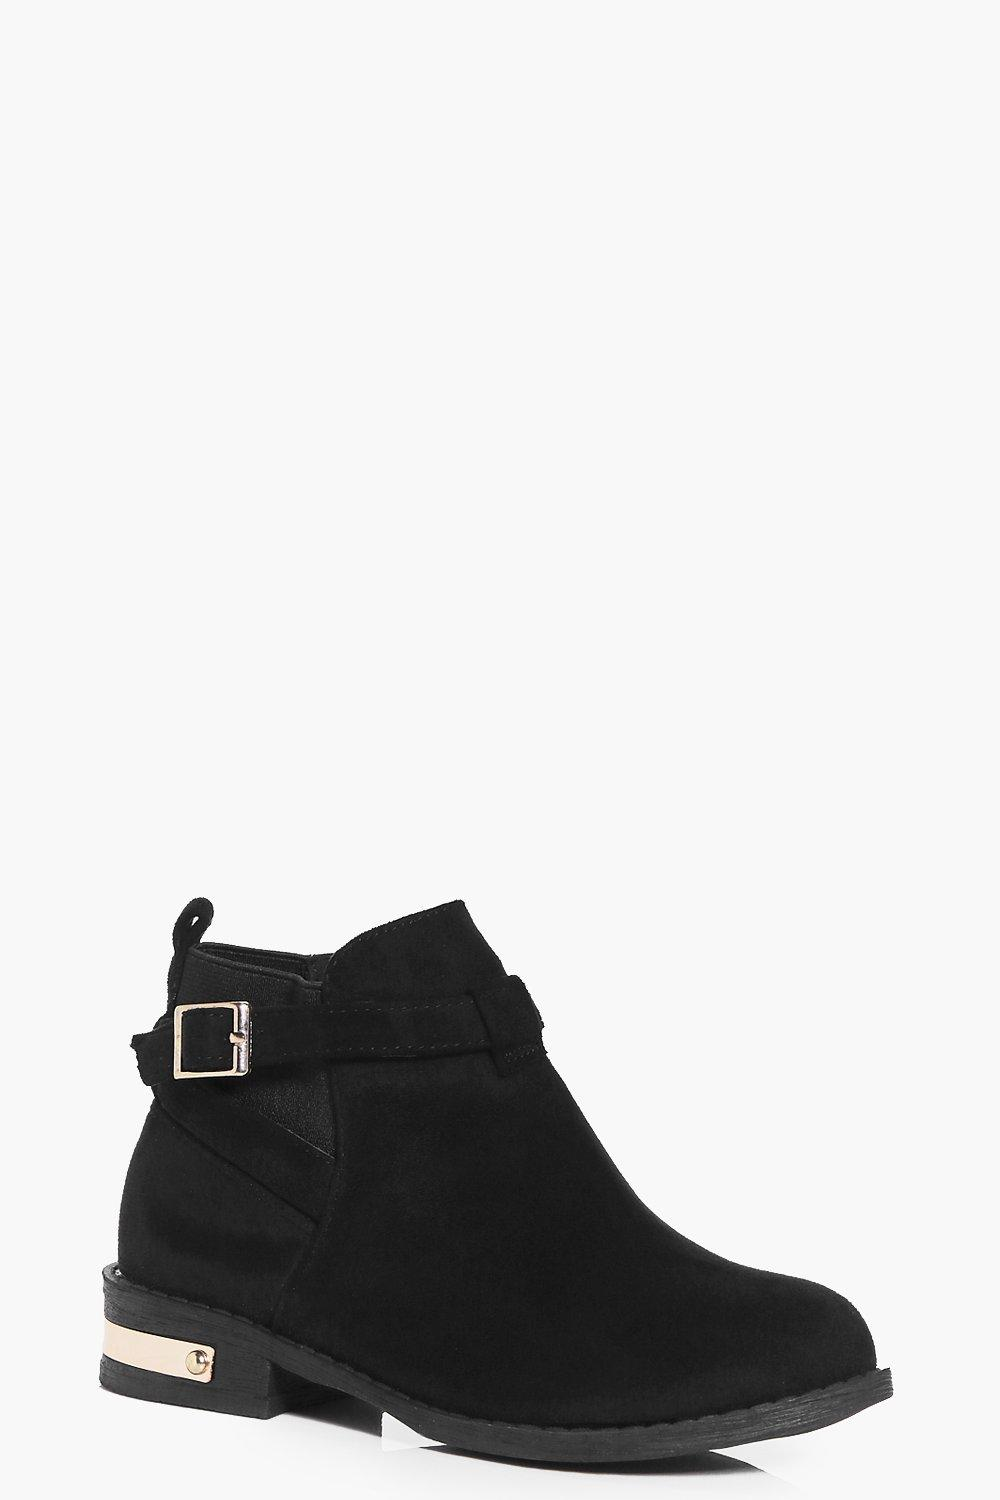 Girls Metal Detail Chelsea Boots